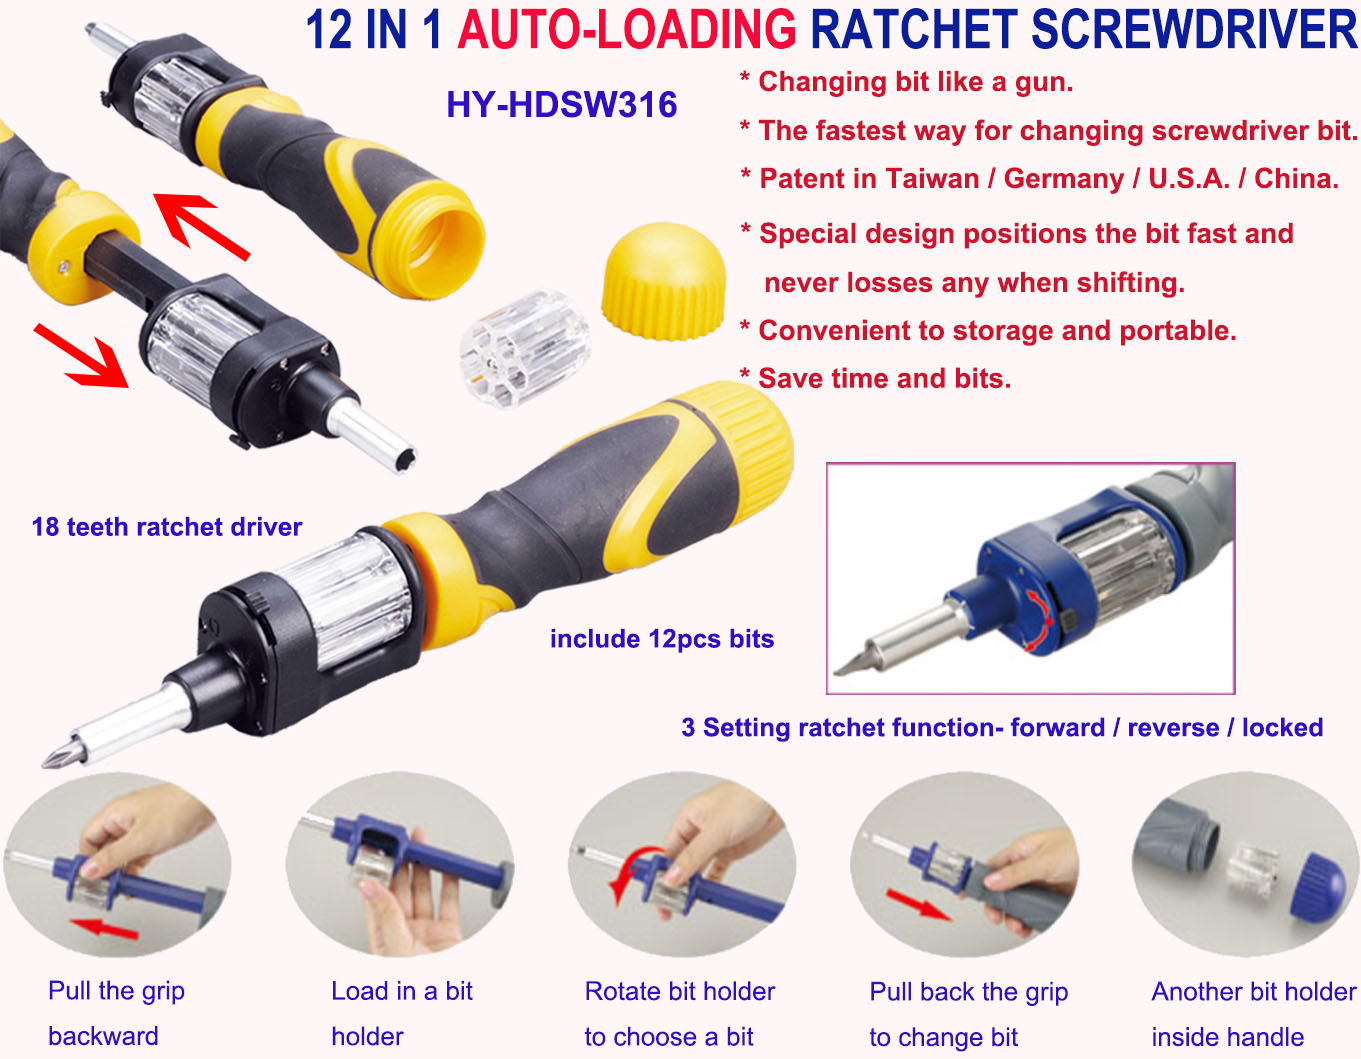 12 In 1 Auto loading Ratchet Screwdriver